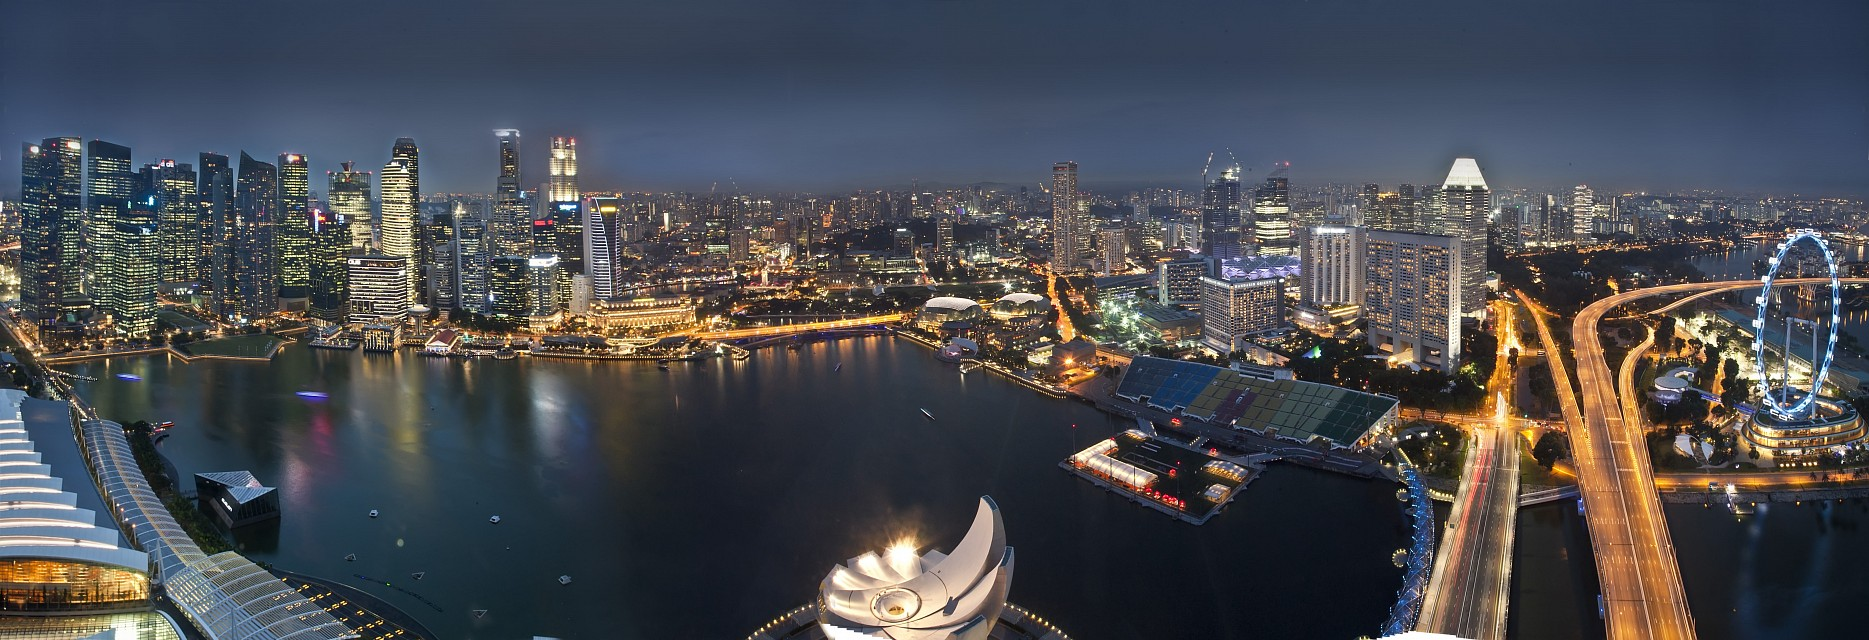 Singapore as seen from Marina